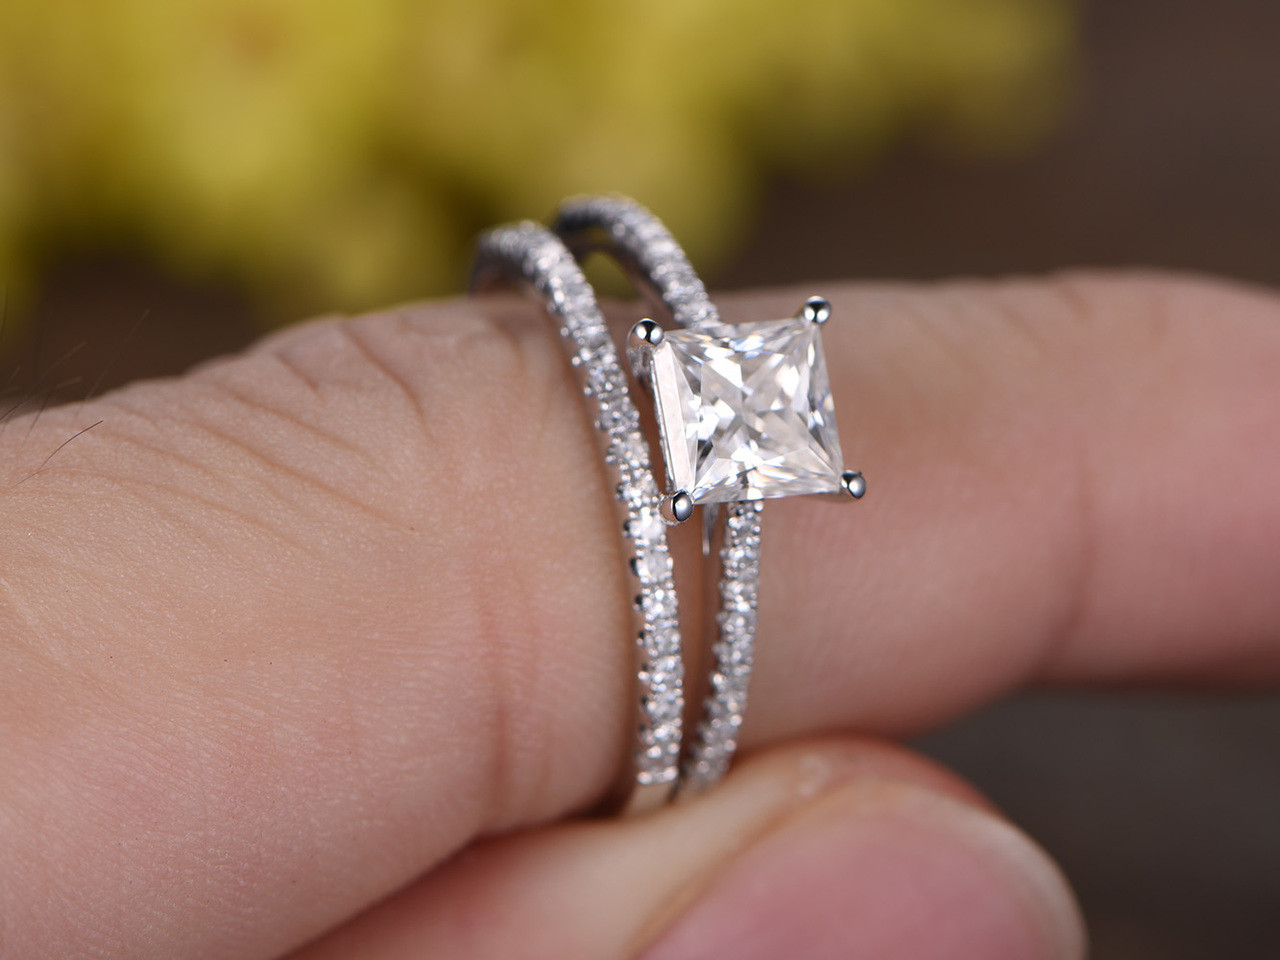 1.5ct princess cut diamond solitaire engagement ring wedding 14k white gold over